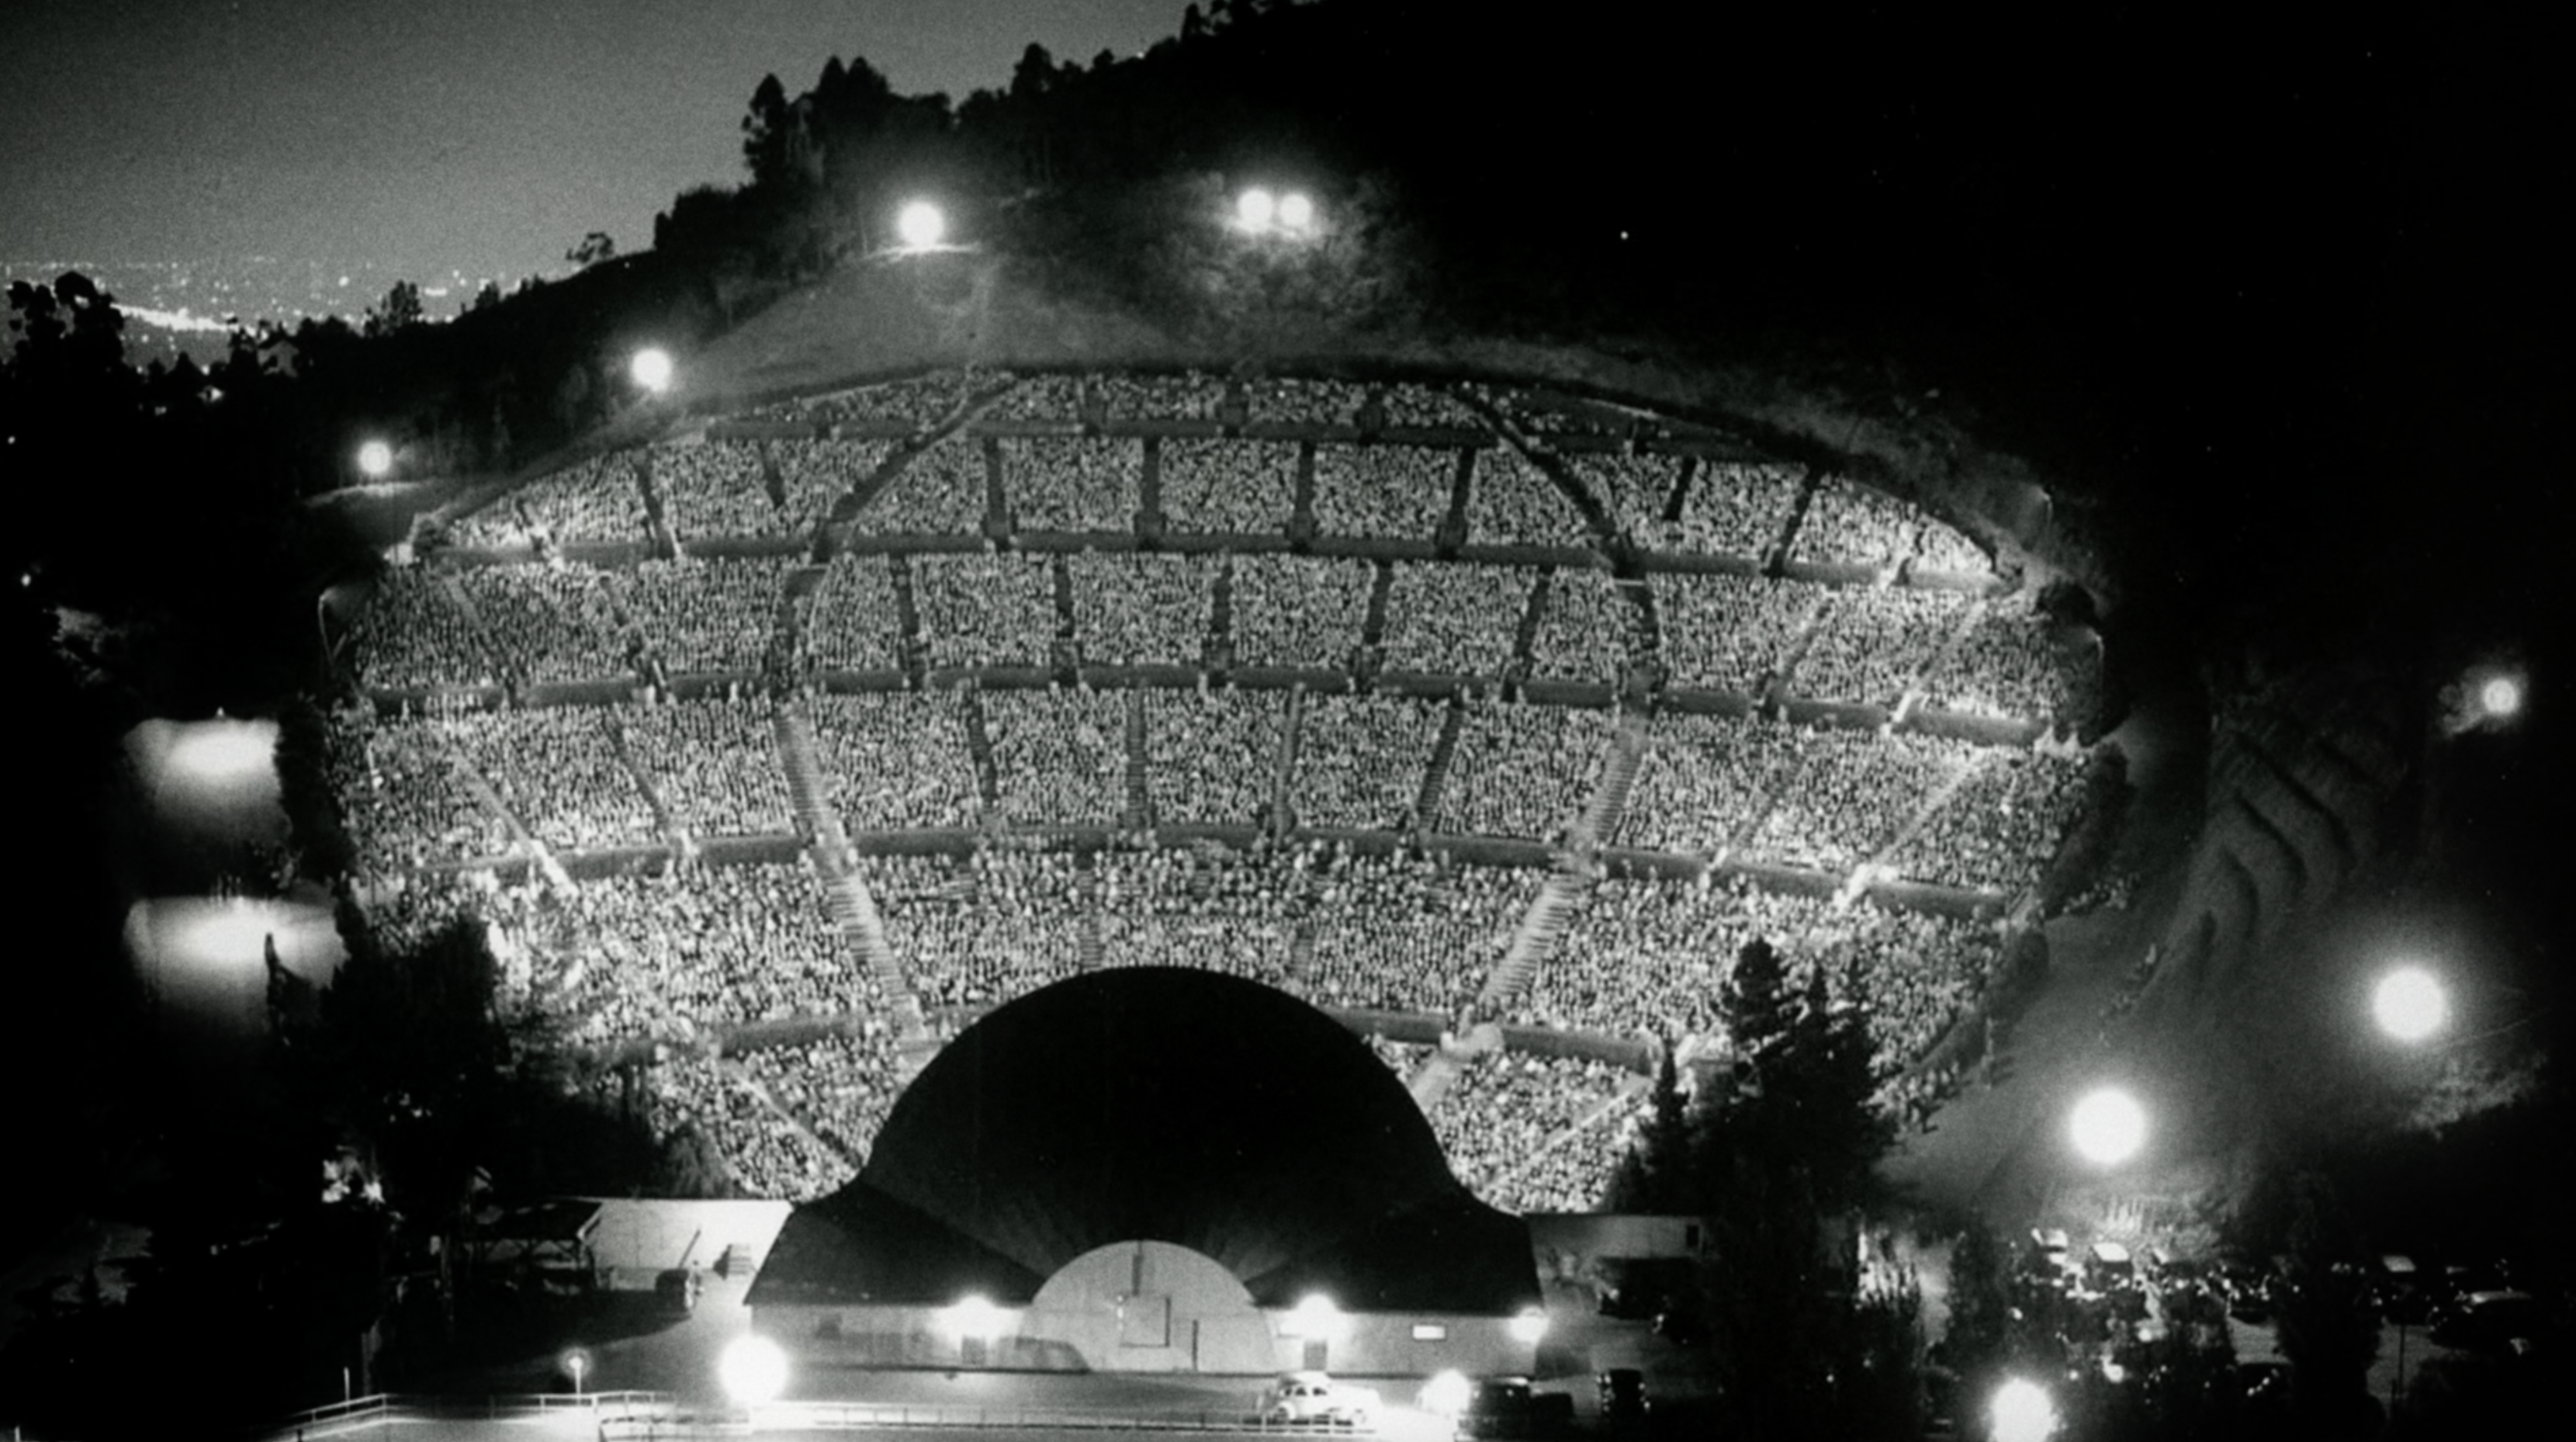 The Hollywood Bowl in the 1940s.